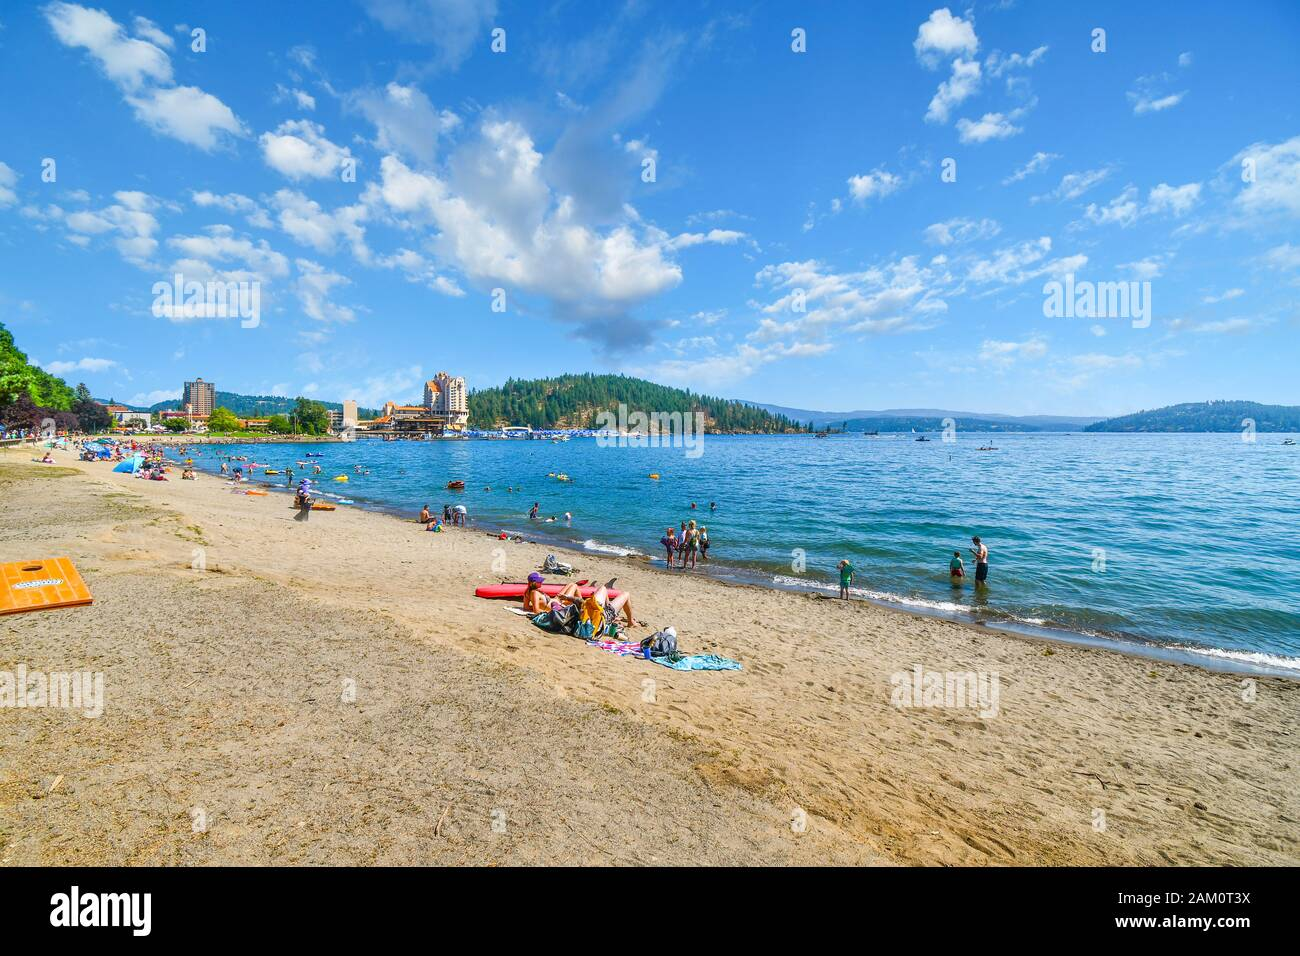 Tourists enjoy a sunny day at the beach of Independence Point at Lake Coeur d'Alene, in the mountain resort city of Coeur d'Alene, Idaho. Stock Photo